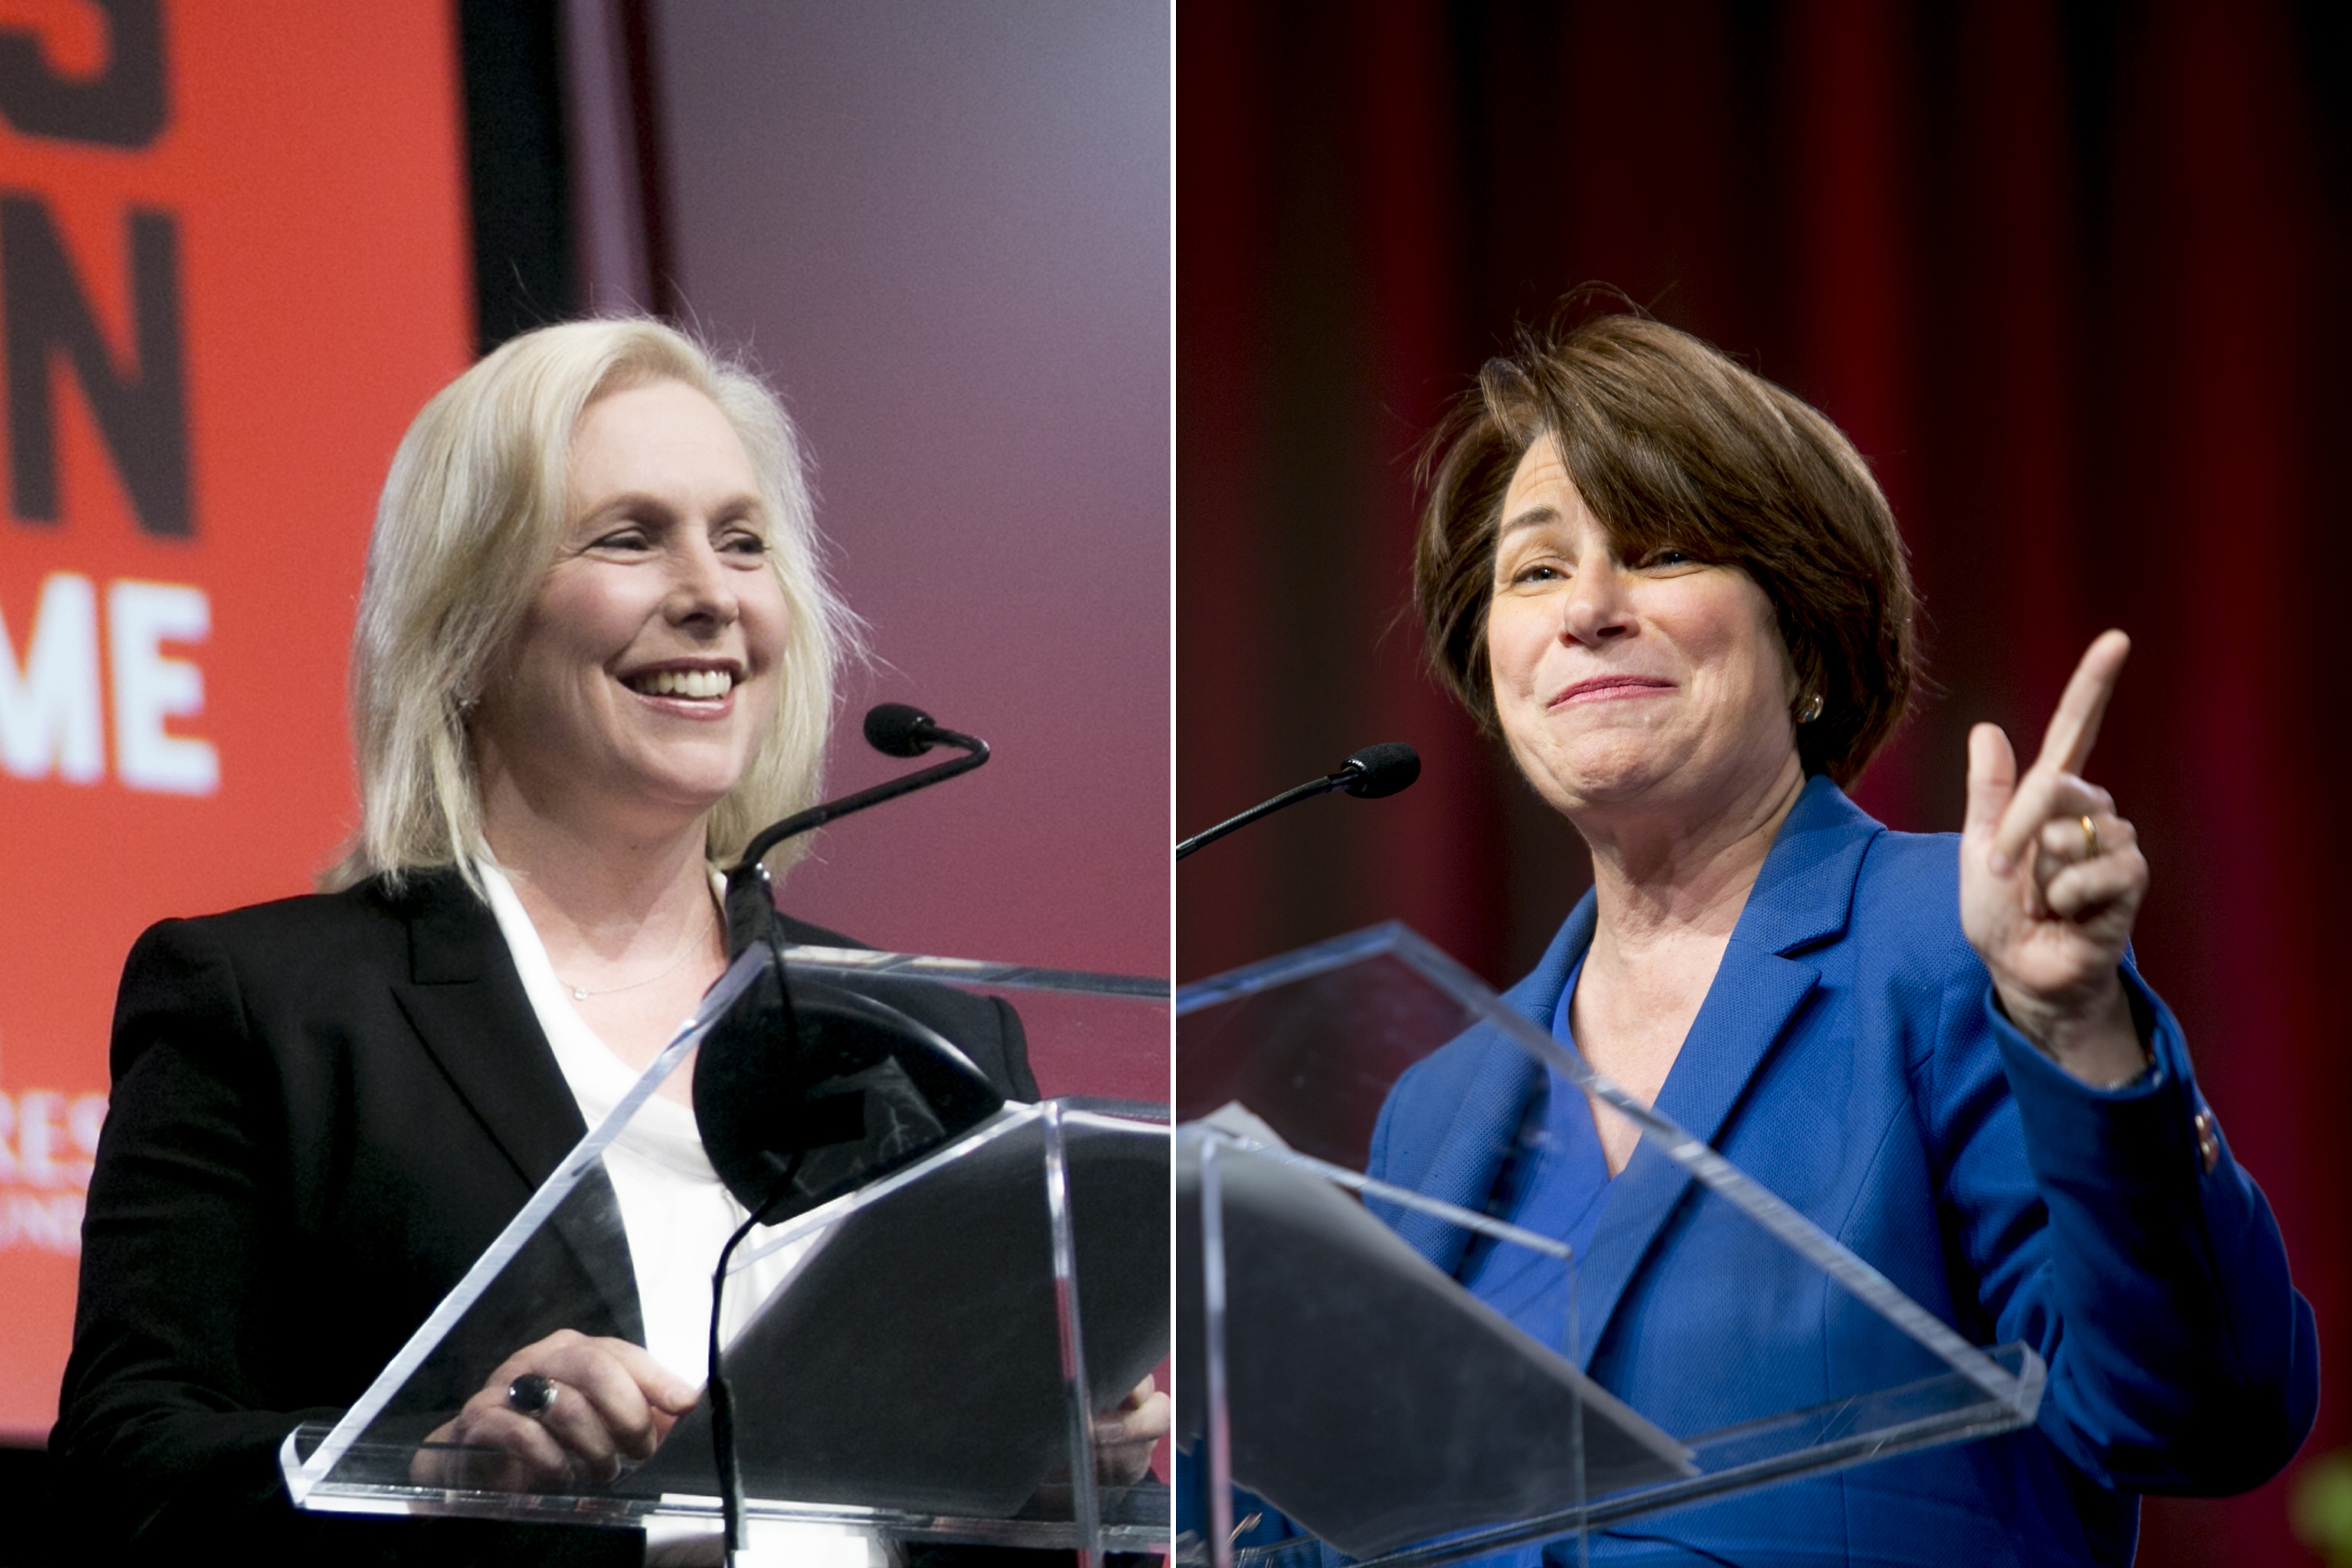 Senator Kirsten Gillibrand and Senator Amy Klobuchar speak during the Women's Convention in Detroit, on Oct. 27, 2017.